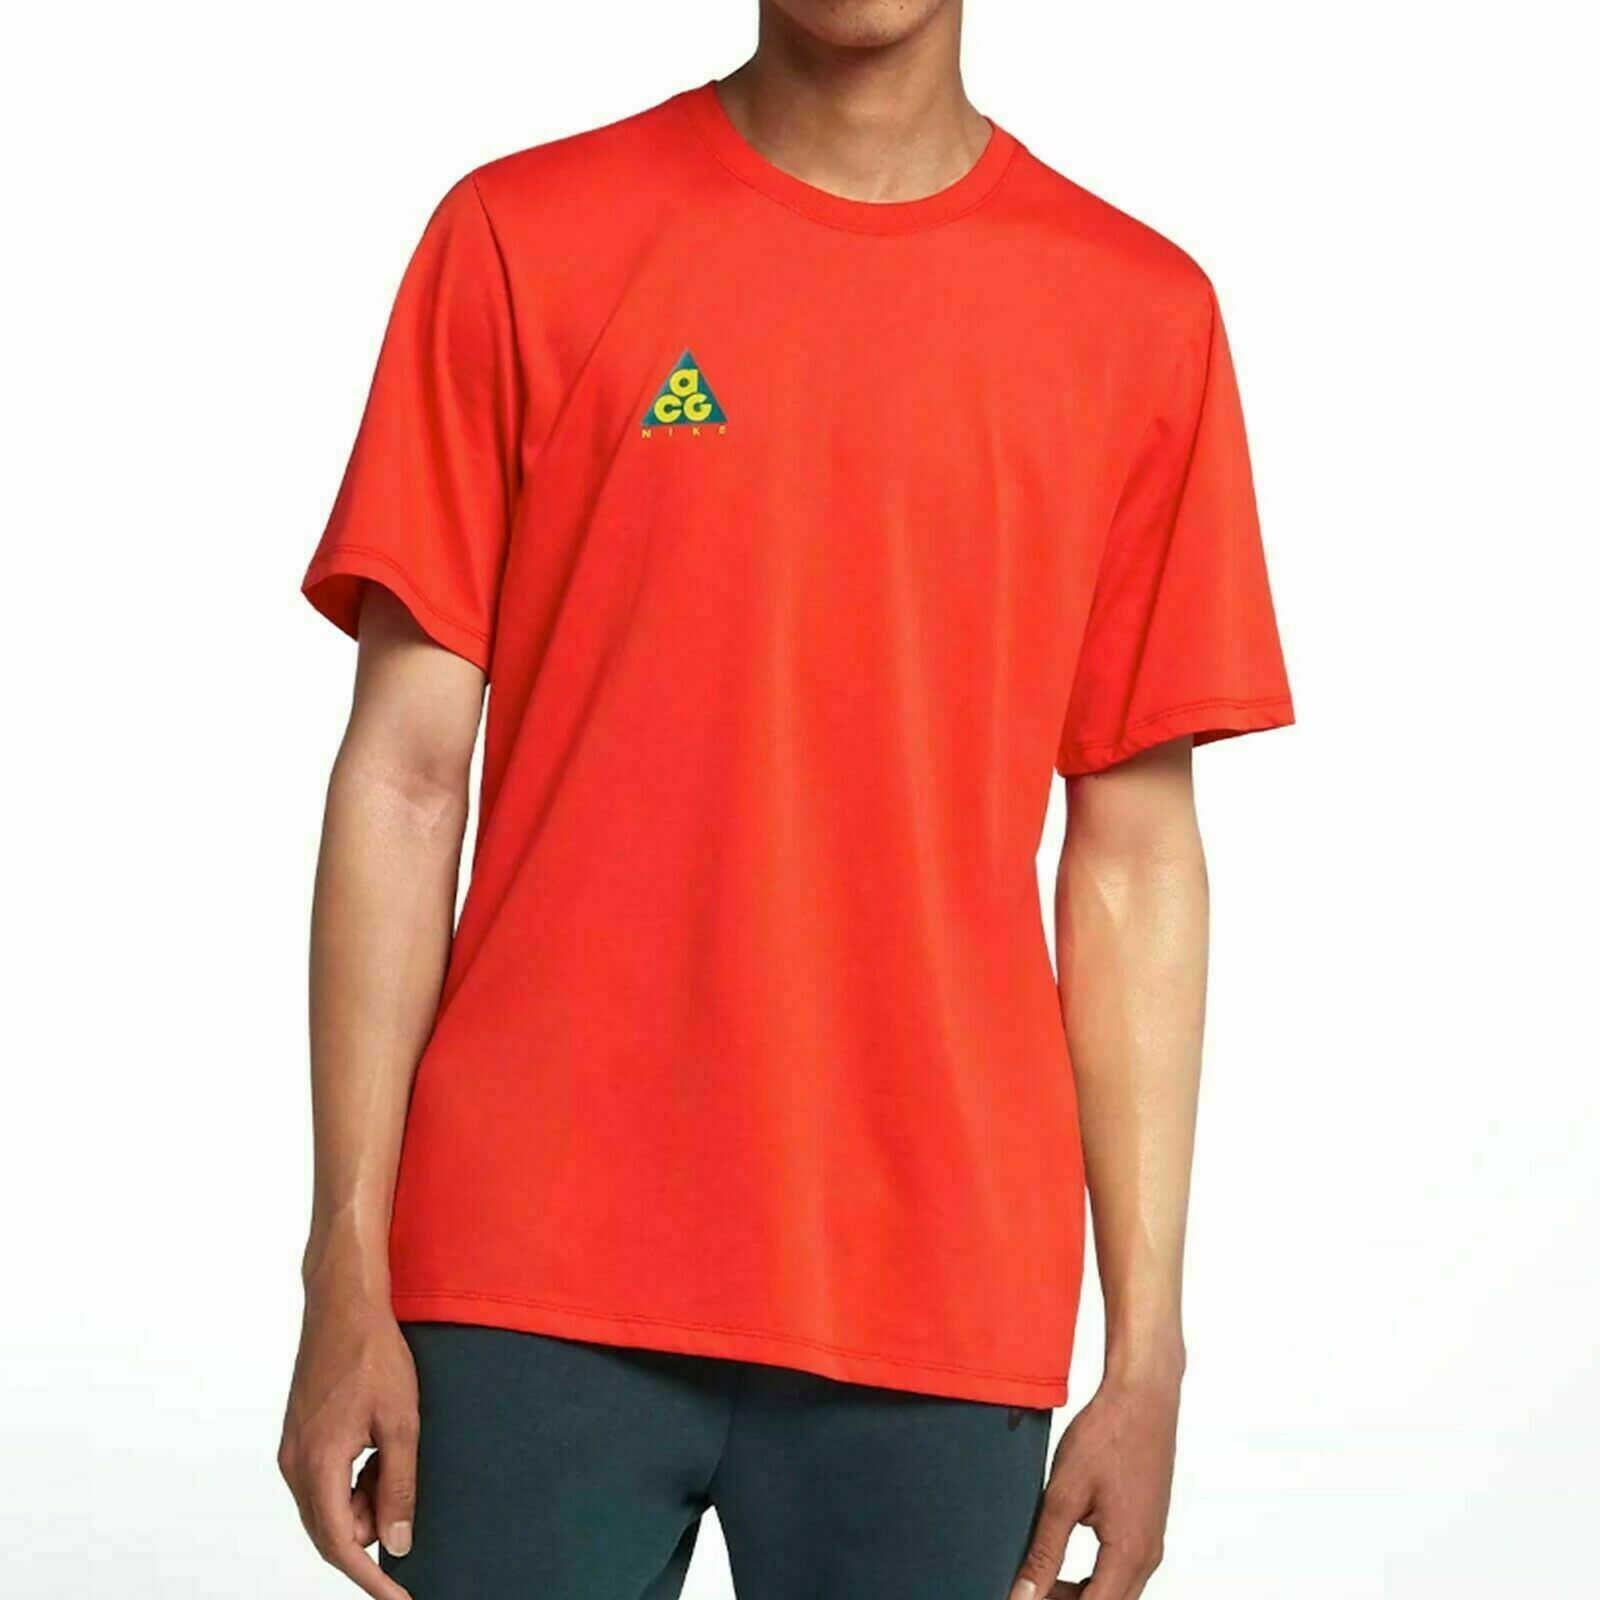 """Nike ACG /""""We Out There/"""" Tee Cream T-Shirt AQ3951-258 Size M L"""